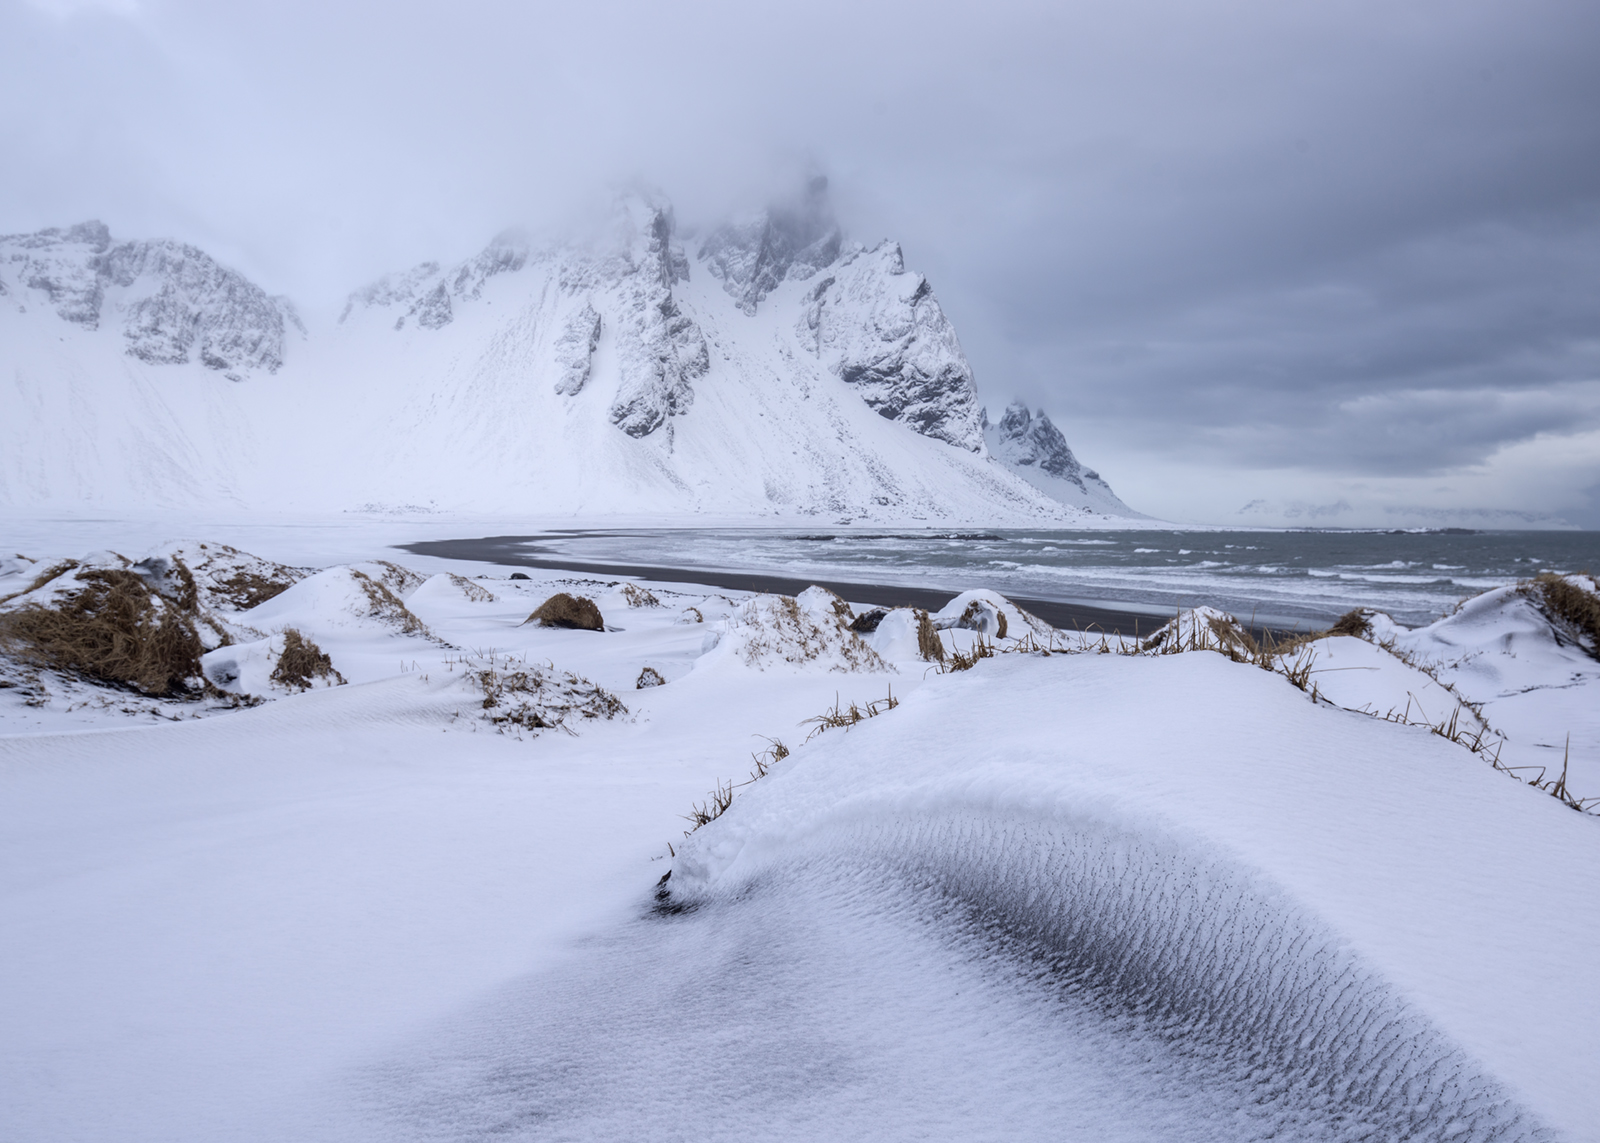 Vestrahorn snow, Sony A7R, Canon 16-35mm f/4 at 16mm, ISO 100, 1/60sec at f/8, Handheld. February. © Andrew Yu